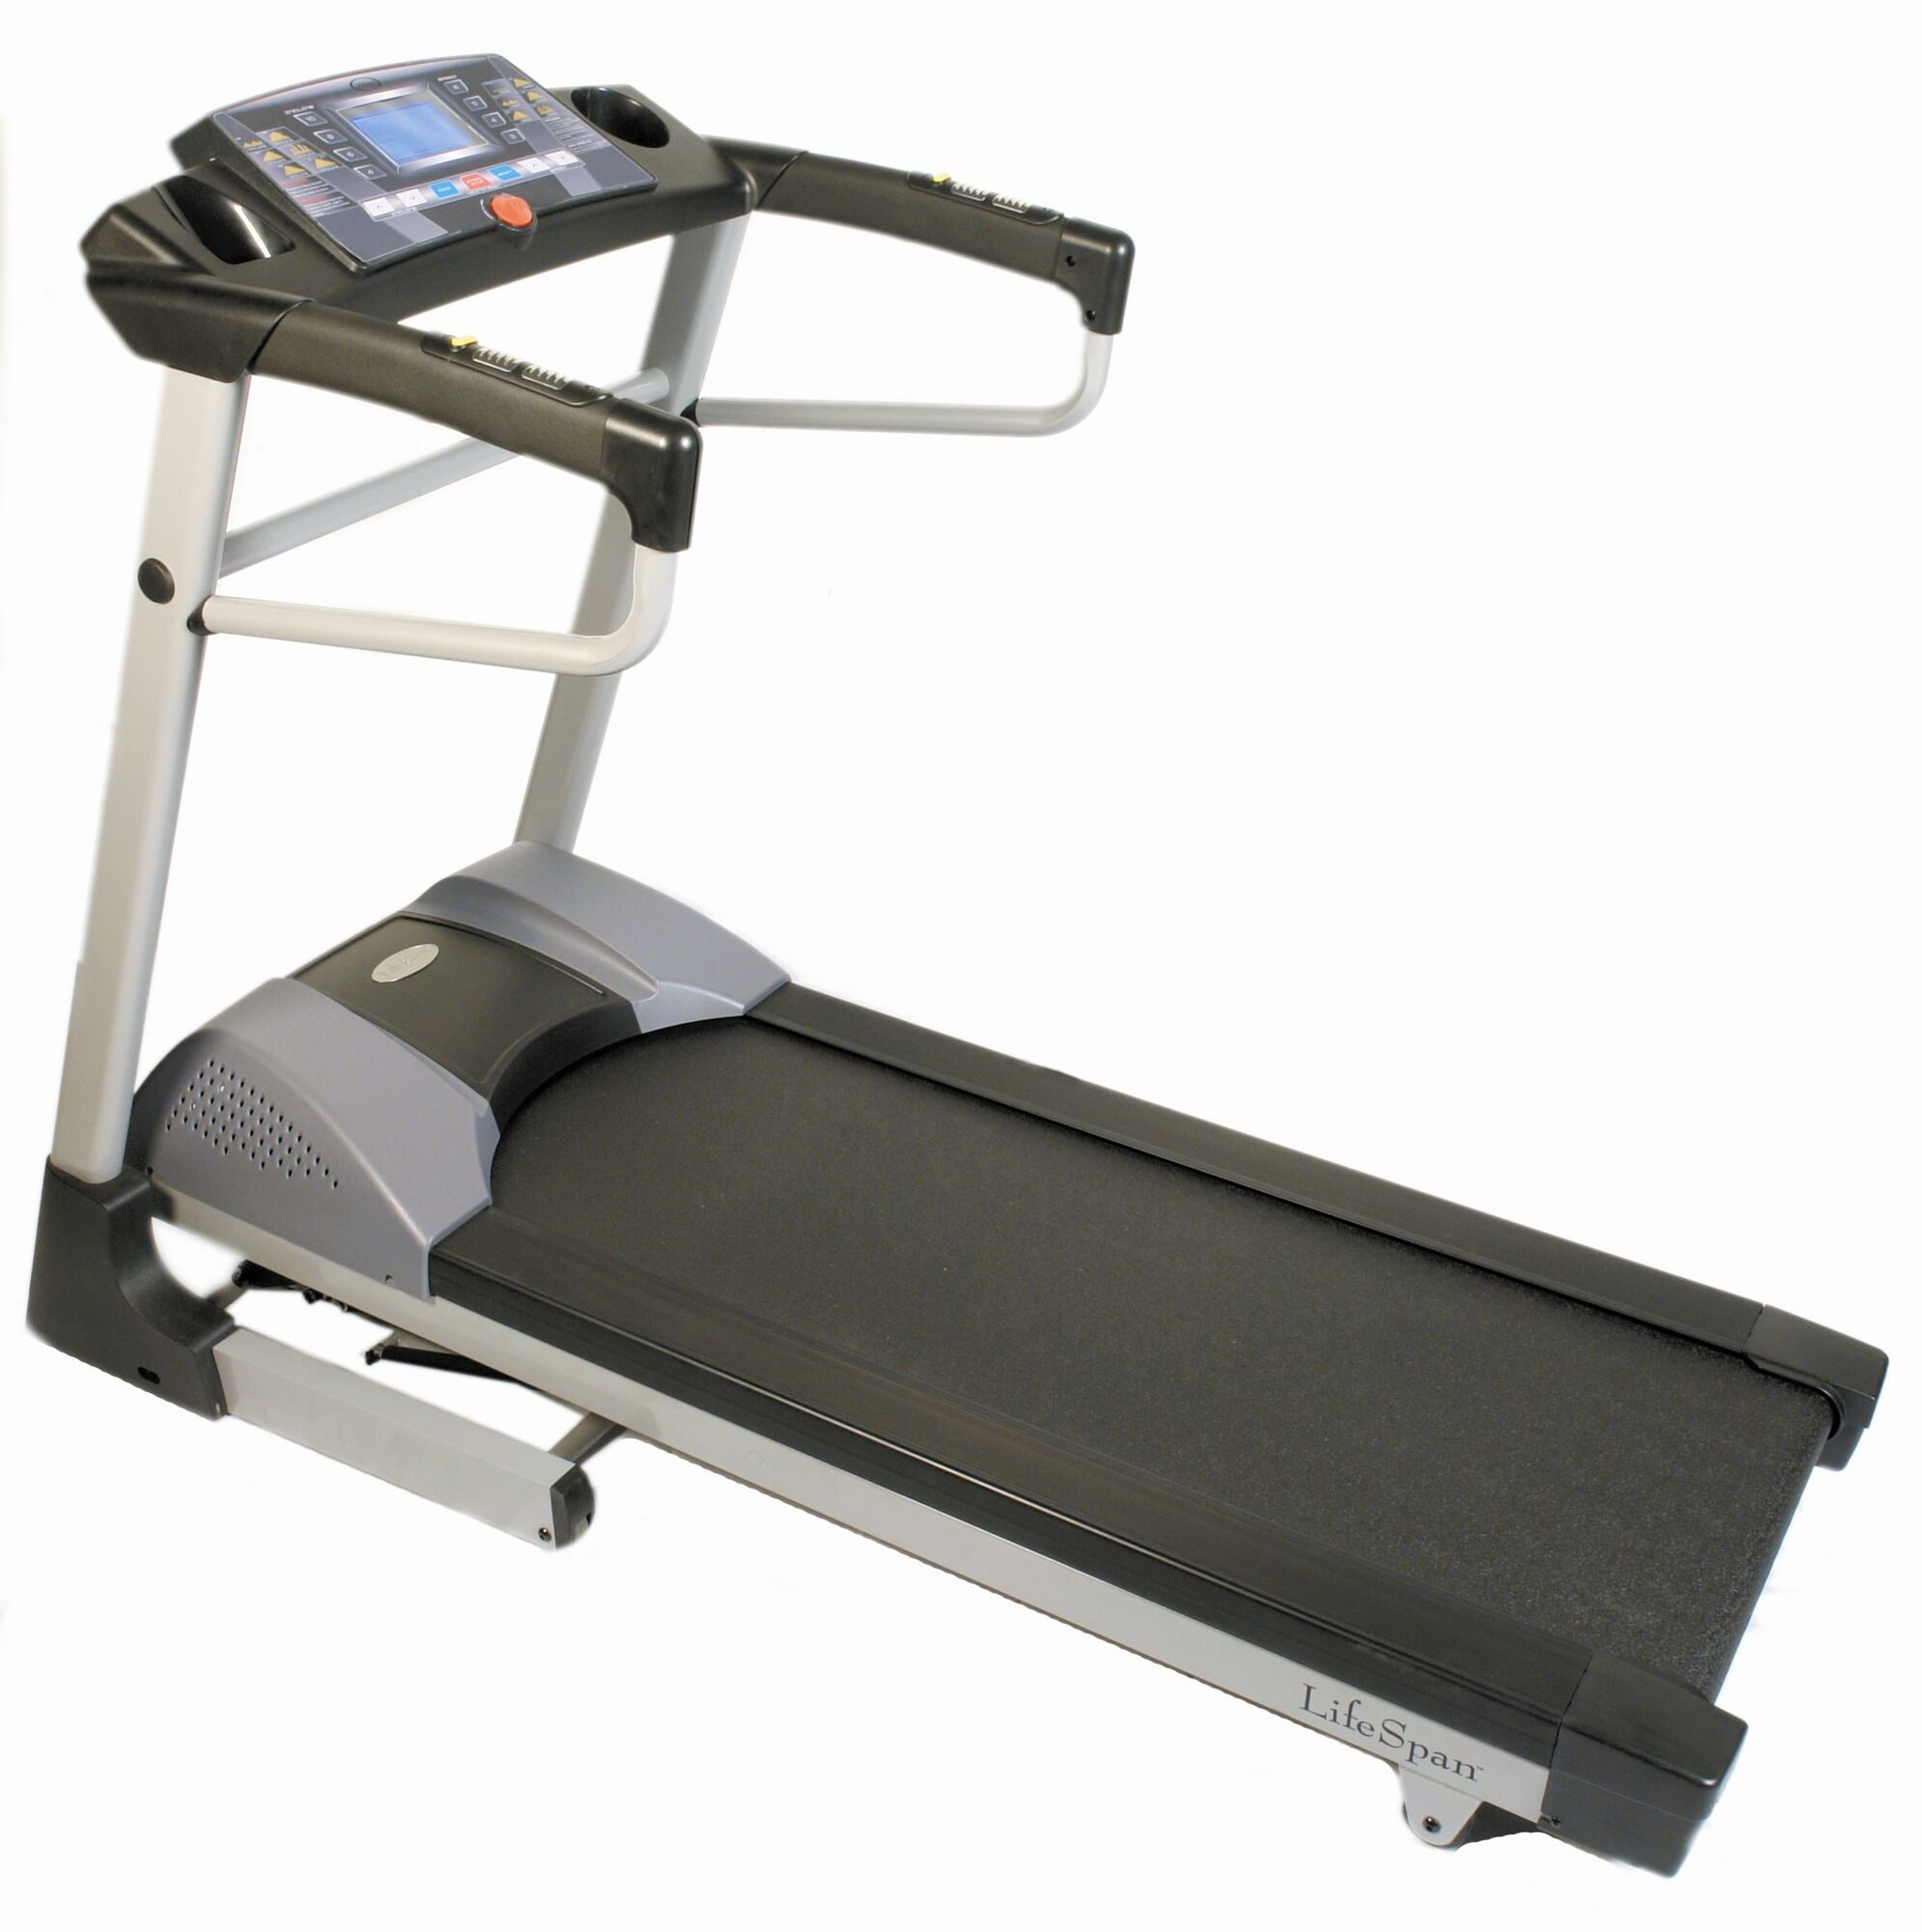 Nordictrack Zs Commercial Folding Treadmill ManualDownload